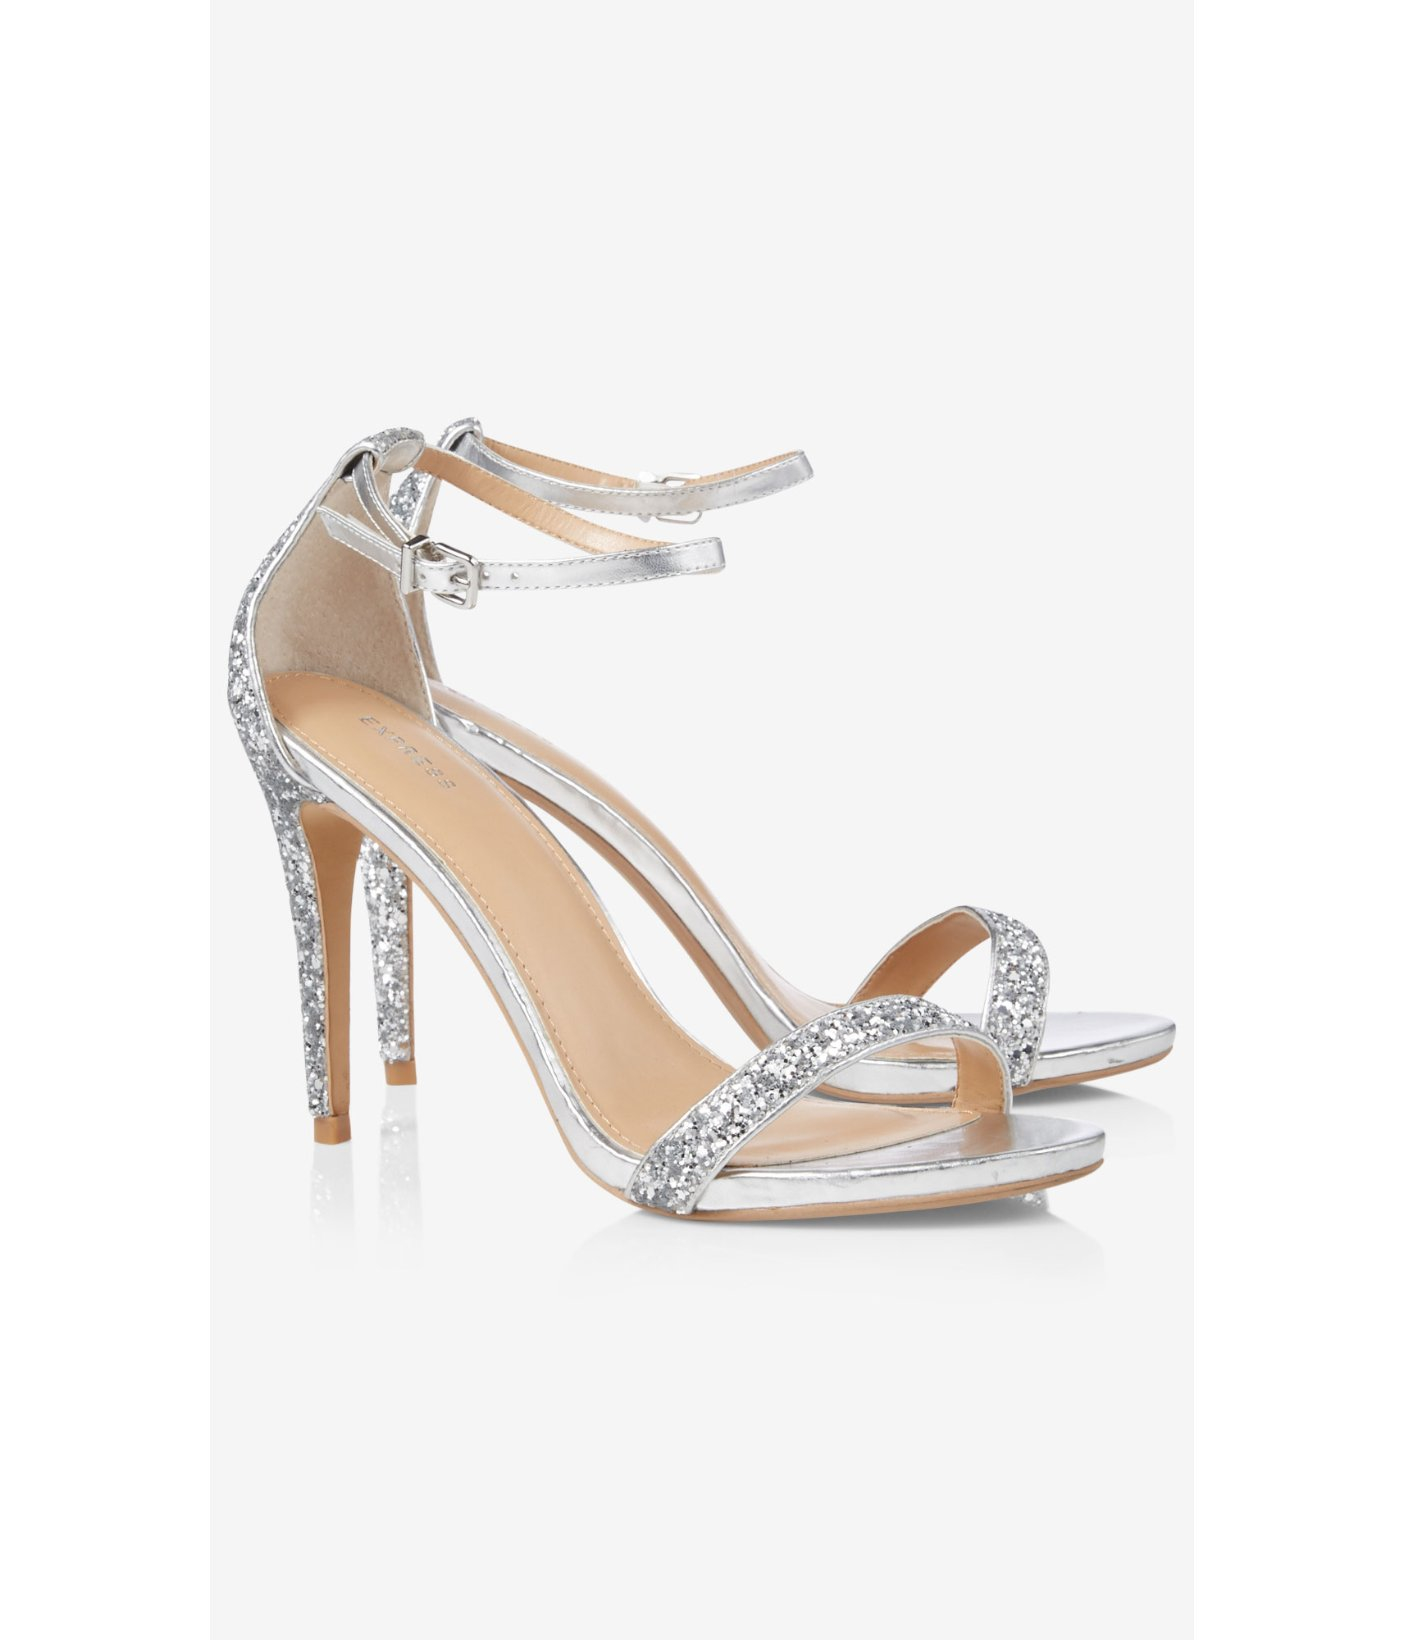 46eab1729c74 Lyst - Express Silver Glitter Sleek Heeled Sandal in Metallic